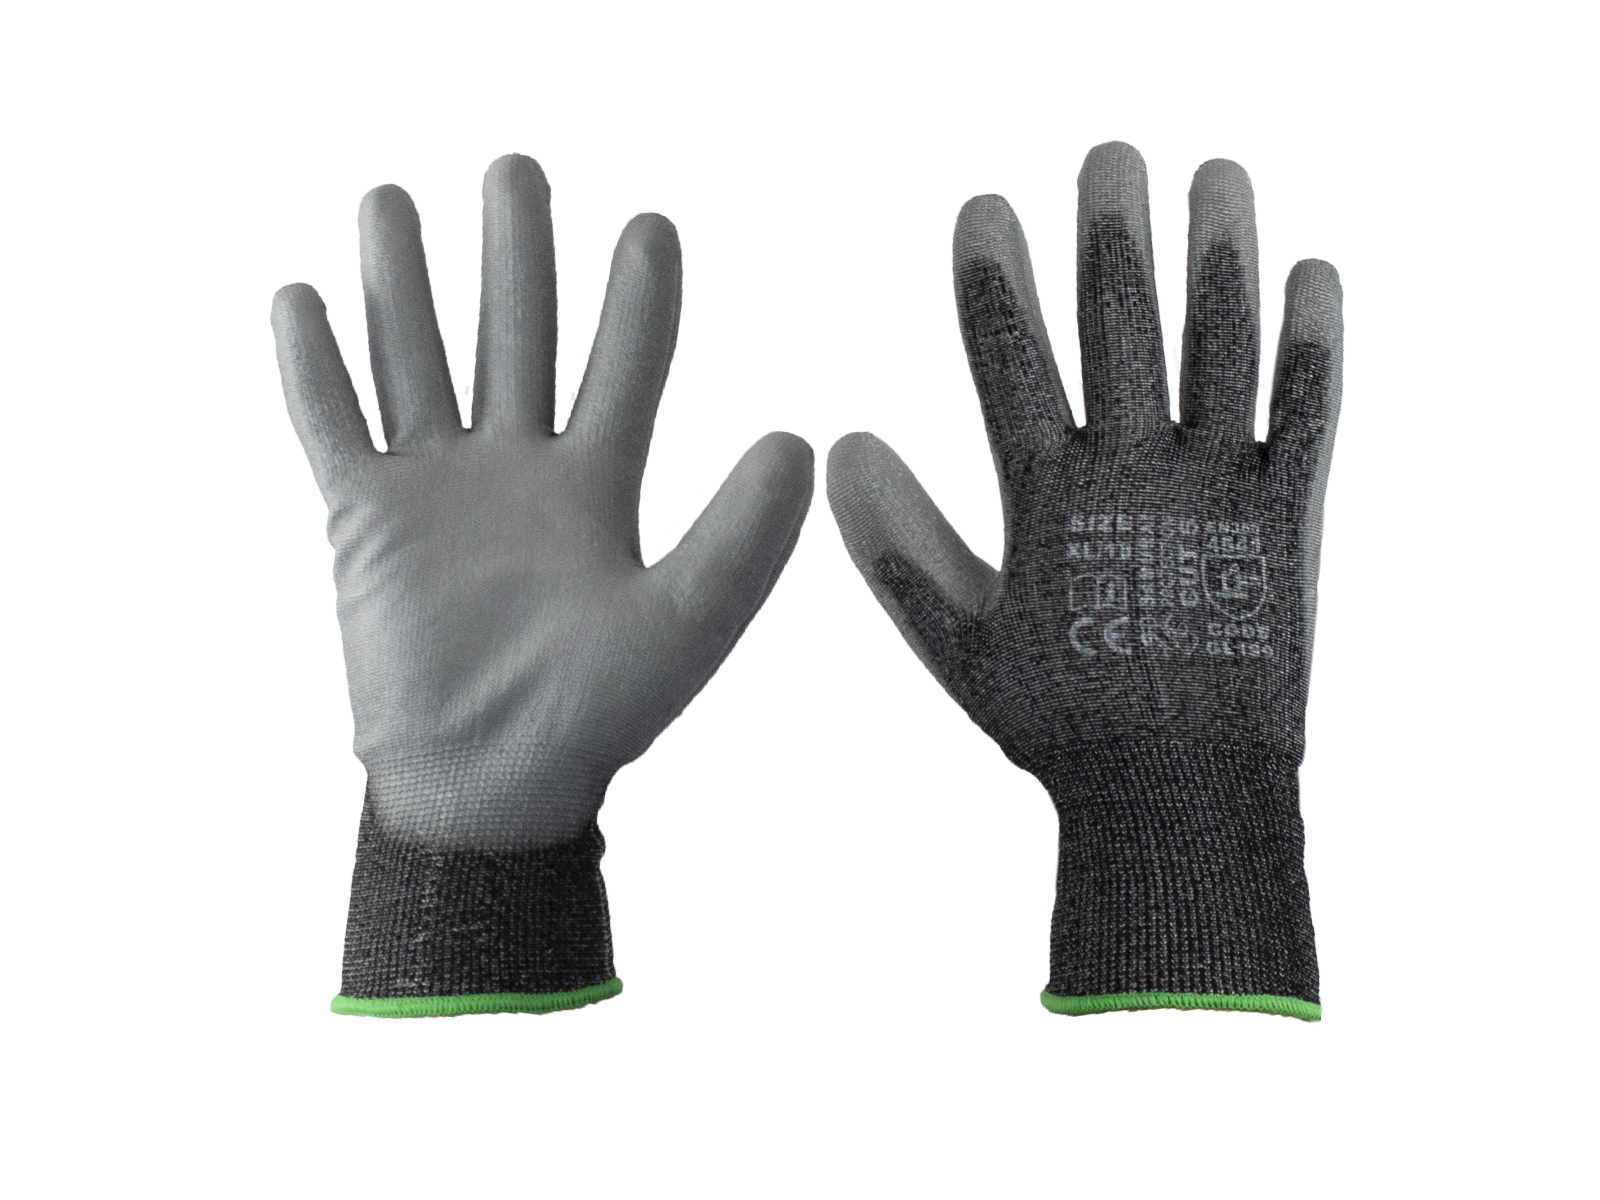 Samurai Cut5 Safety Gloves w/ high dexterity for dry applications -12 Pairs / Pack